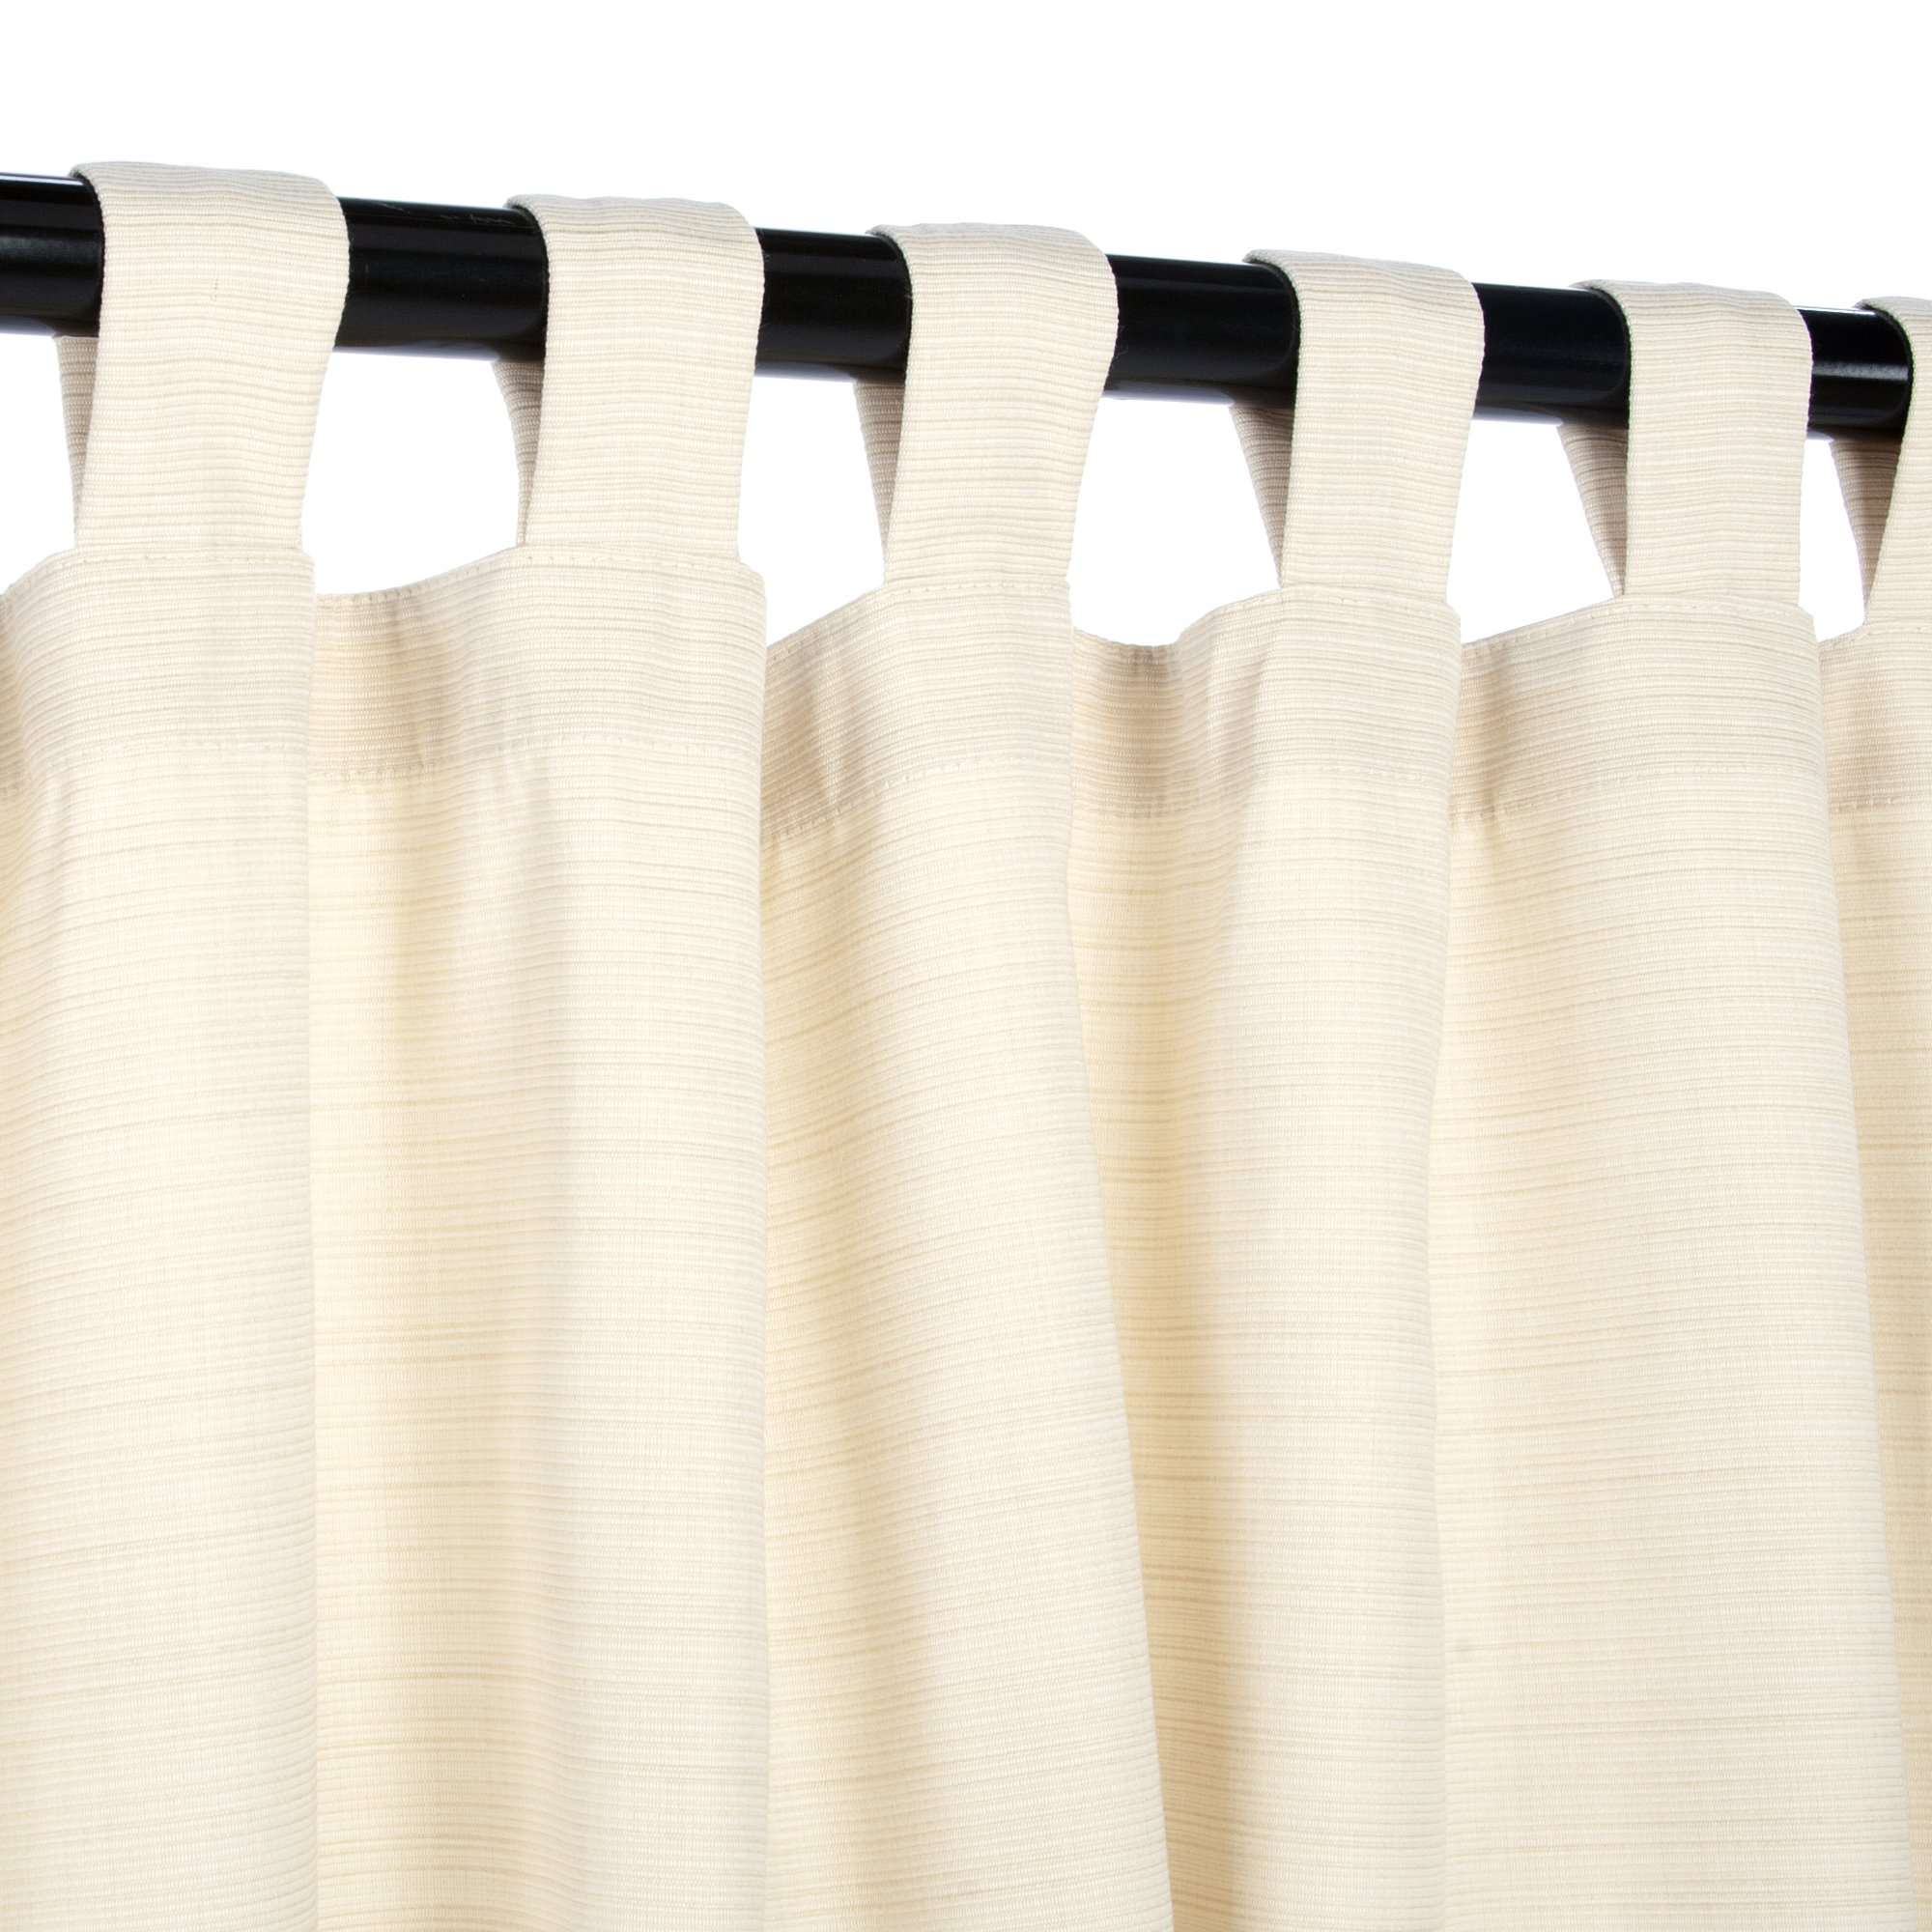 Sunbrella Outdoor Curtain Panel, Tab Top, 50 by 108 Inch, Dupione Pearl (Available in Multiple Colors and Sizes) Includes Custom Storage Bag; Perfect For Your Patio, Porch, Gazebo, Pergola, and More